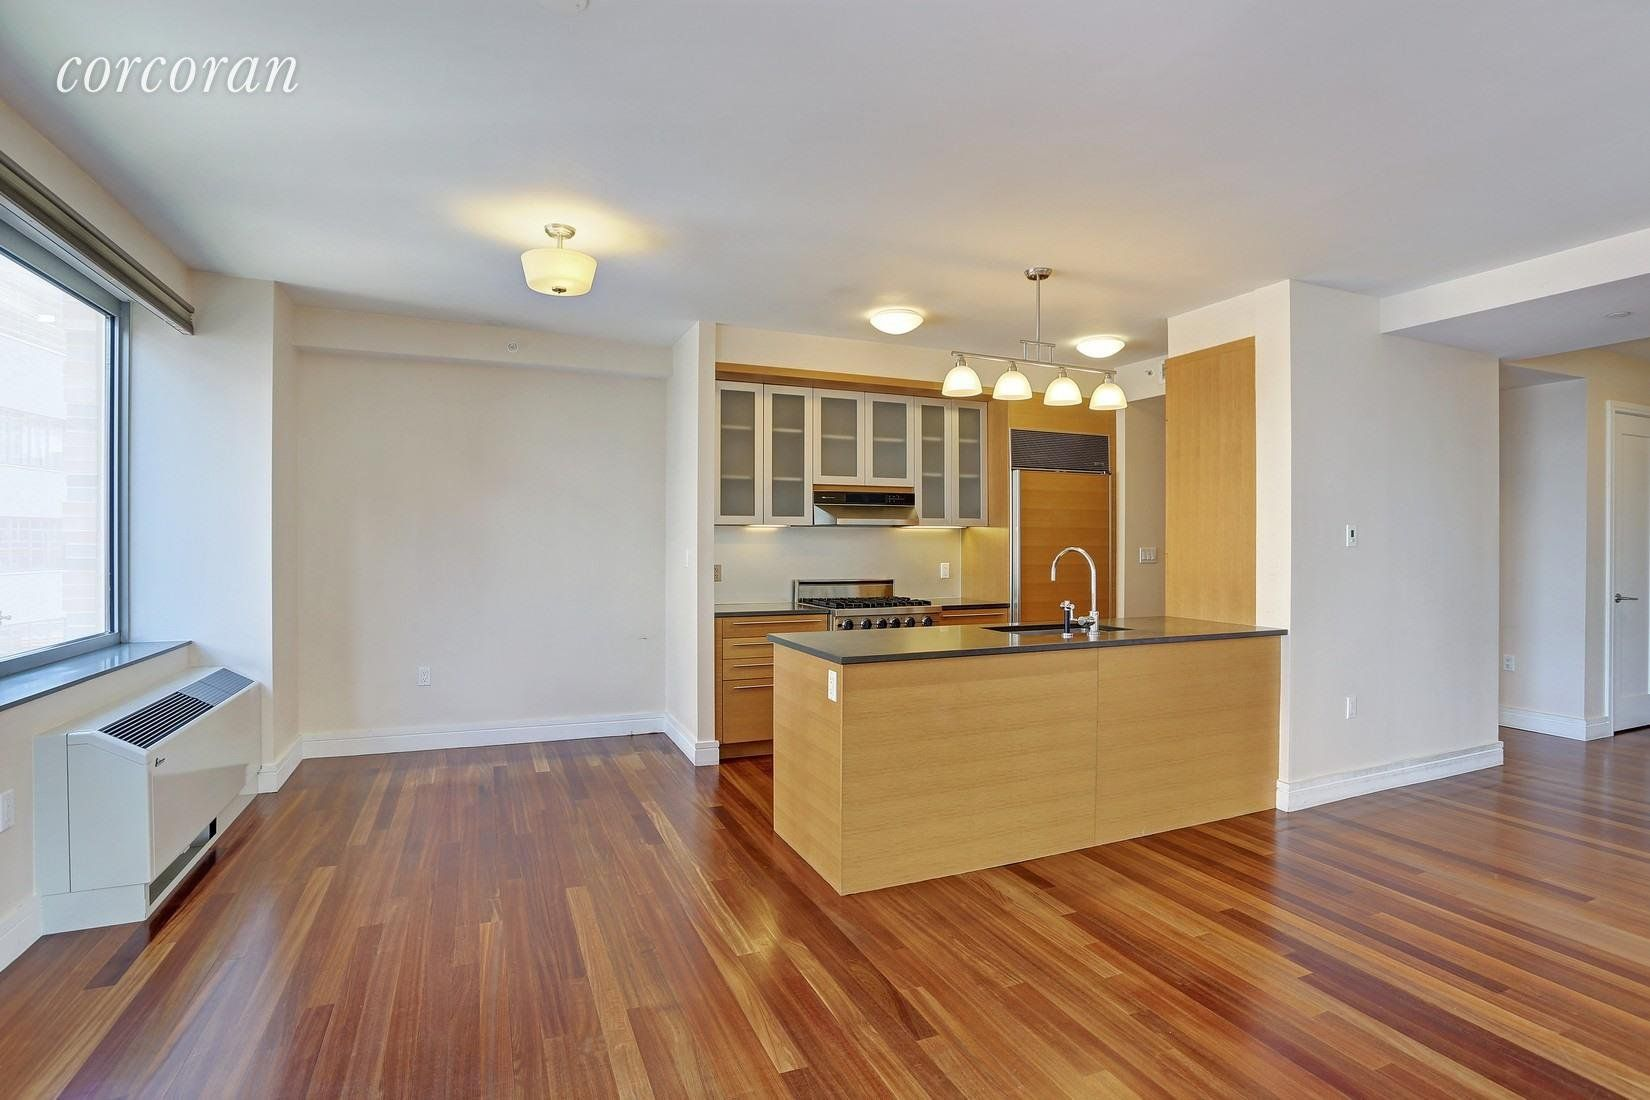 Ad Rental Apartment New York (10004) ref:5585814 | Rental ...